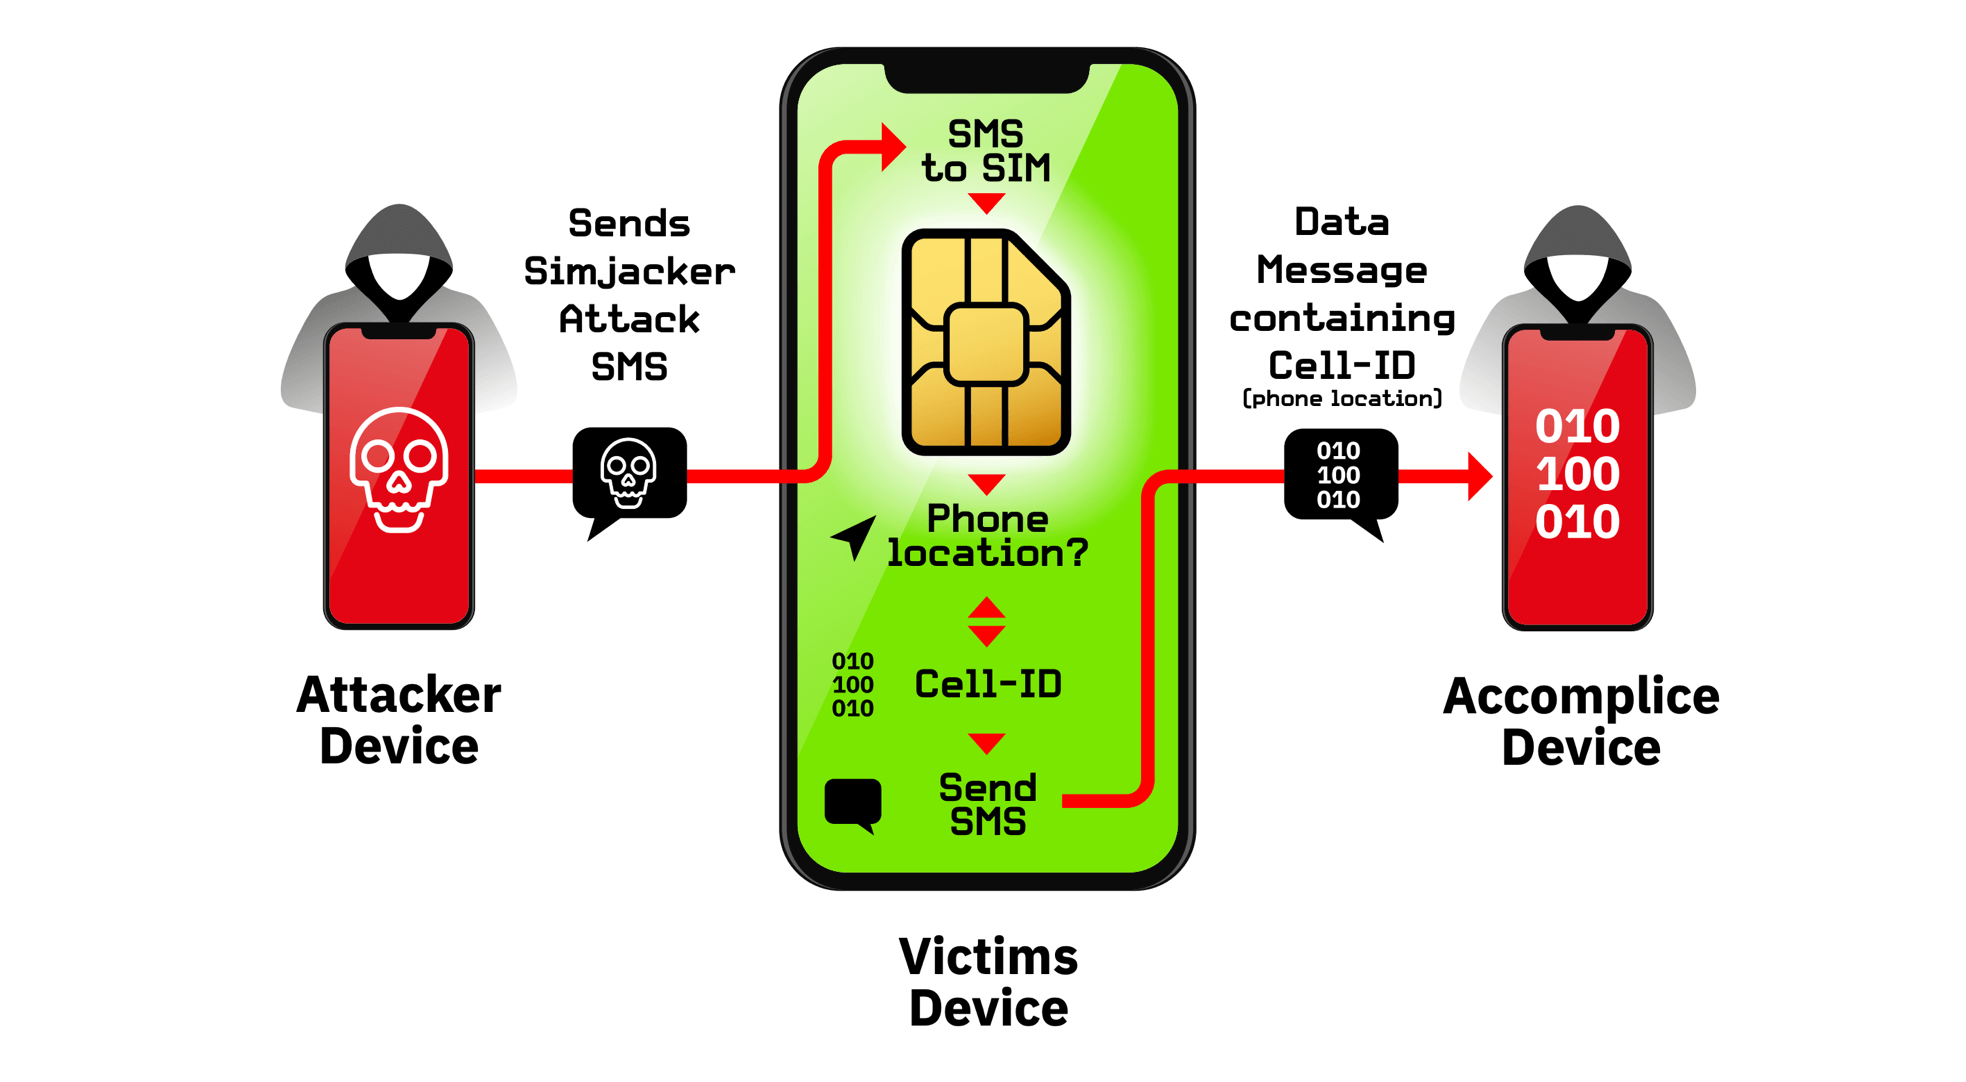 SimJacker attack allows hacking any phone with just an SMS